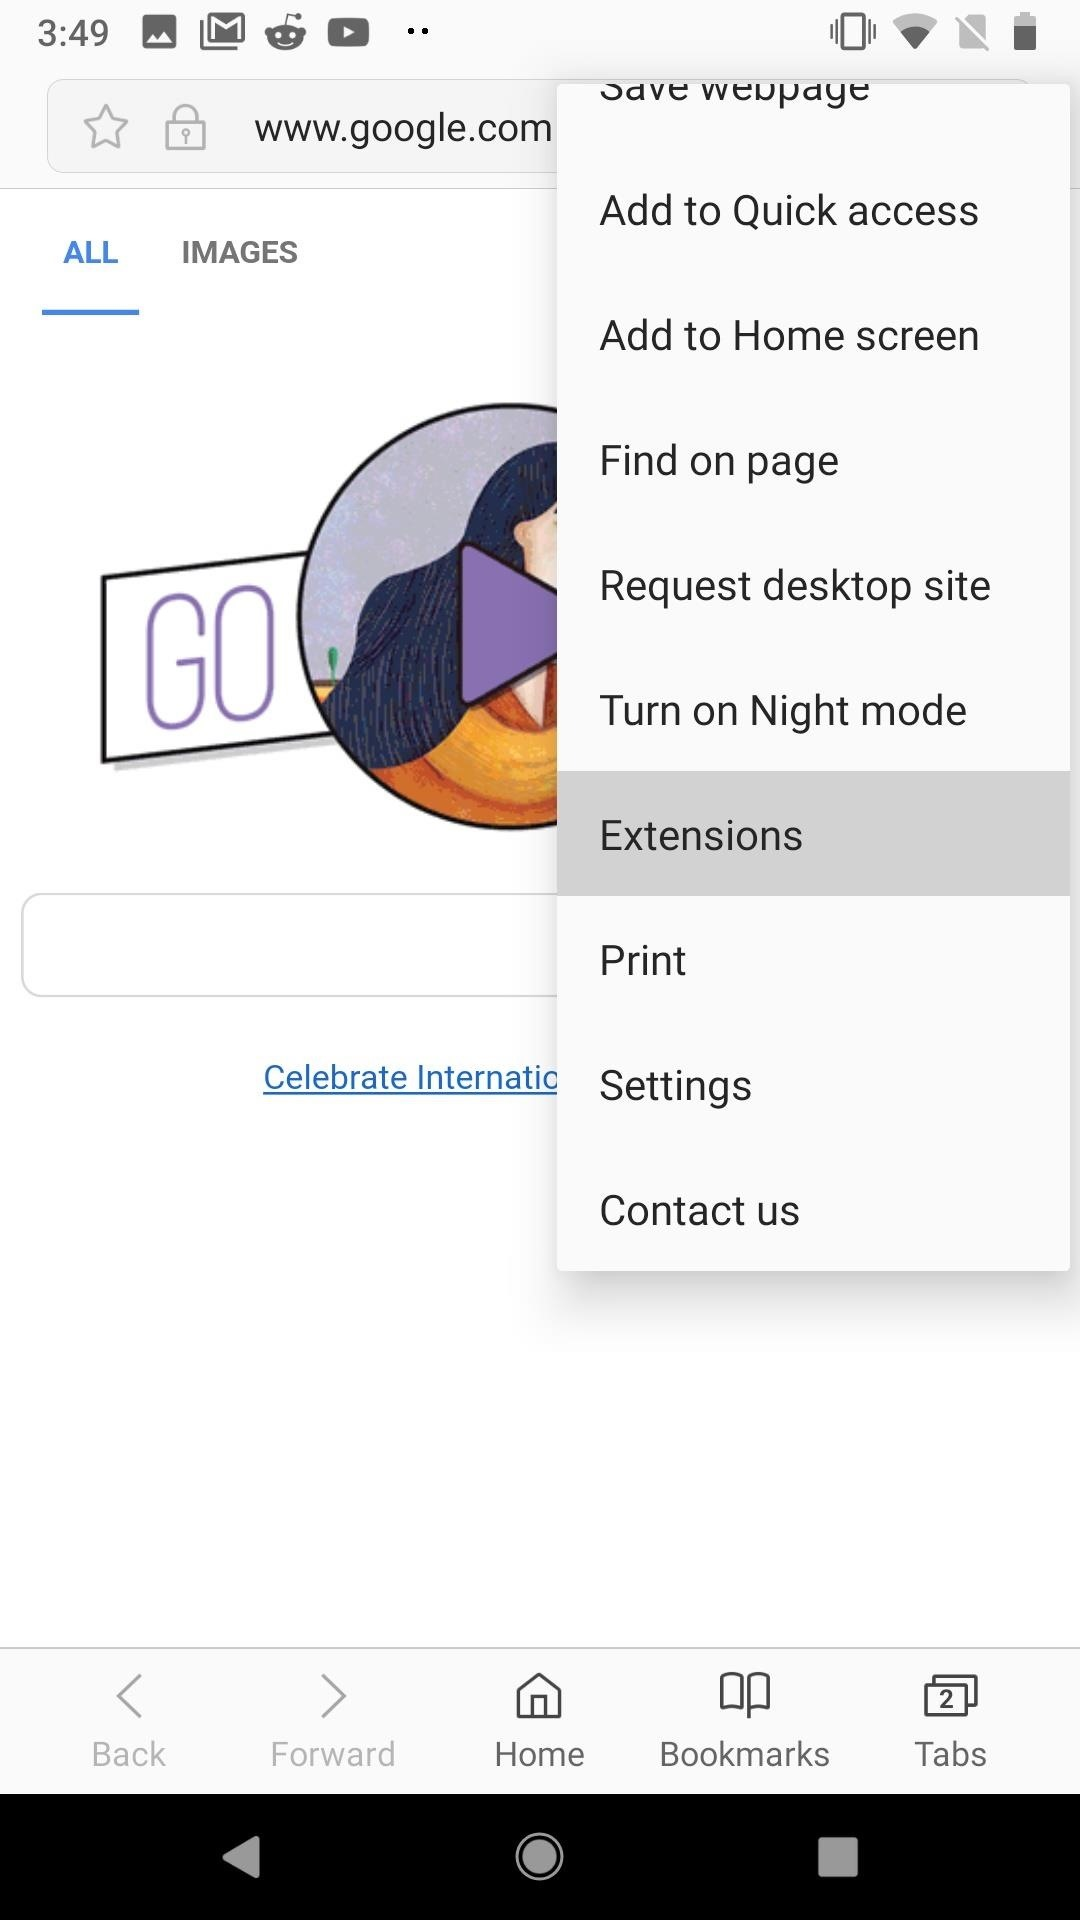 Samsung Internet 101: How to Use Extensions to Block Ads, Scan QR